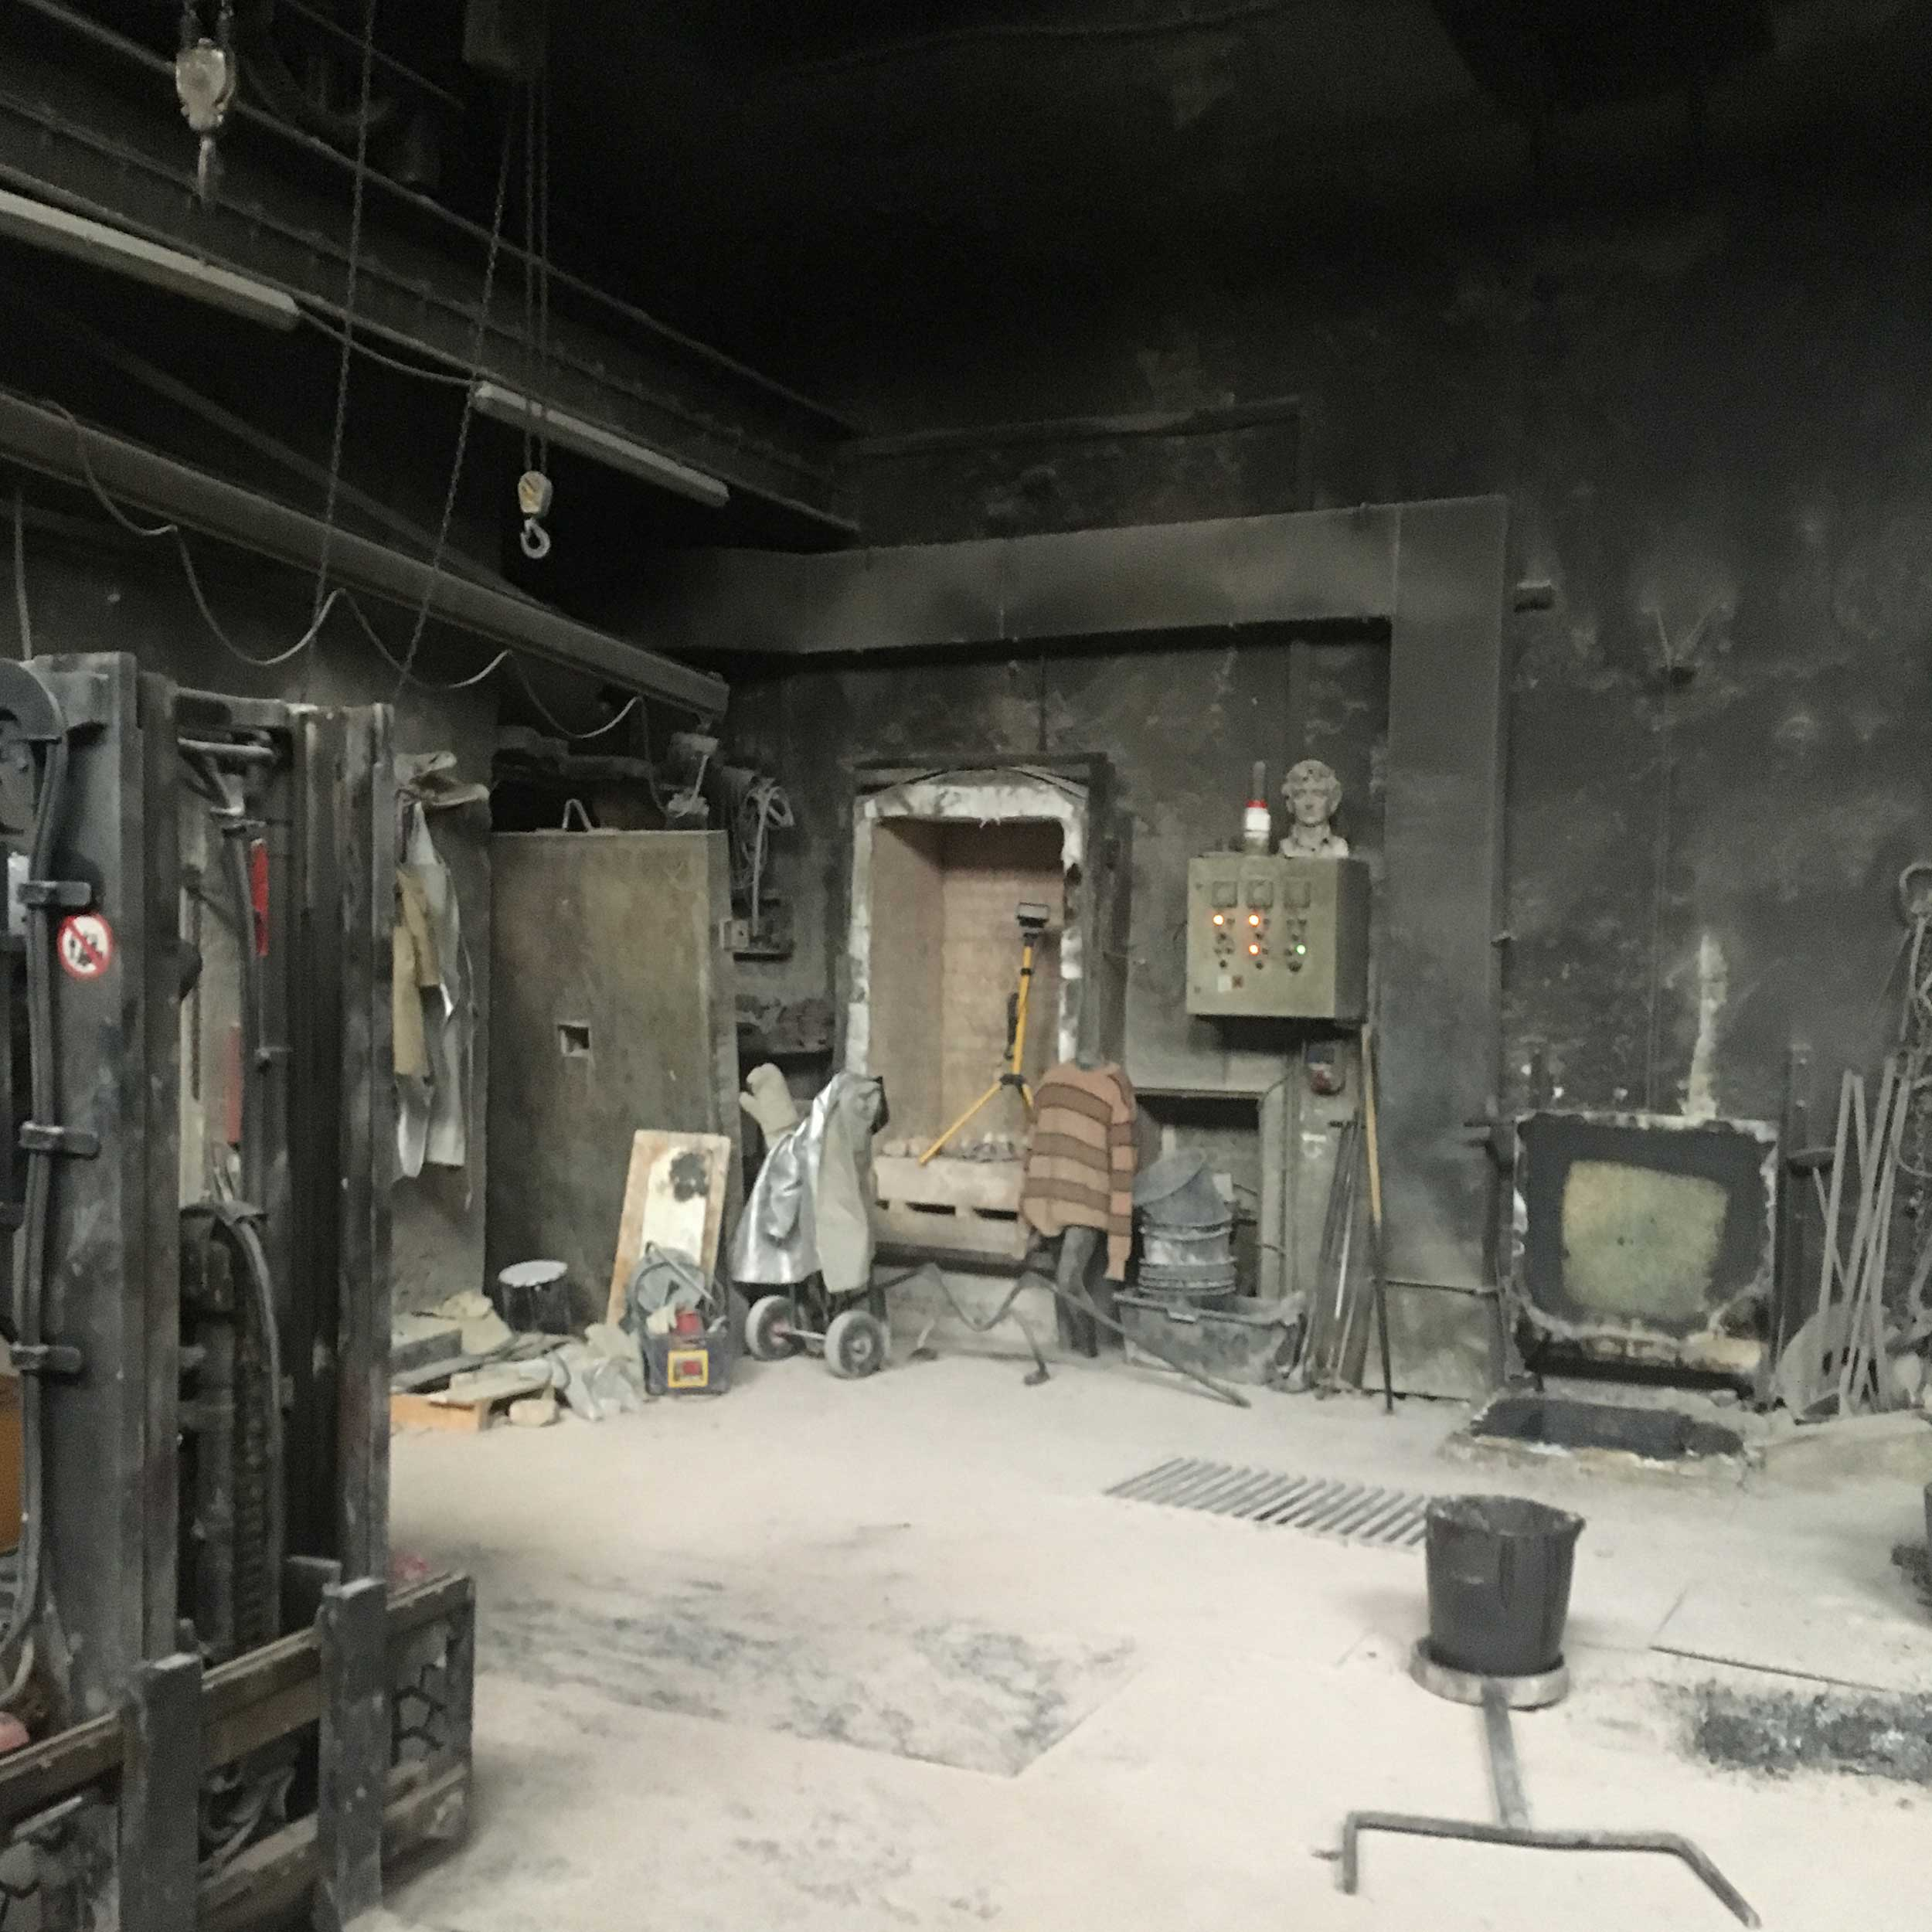 Inside the foundry - lots of dust!